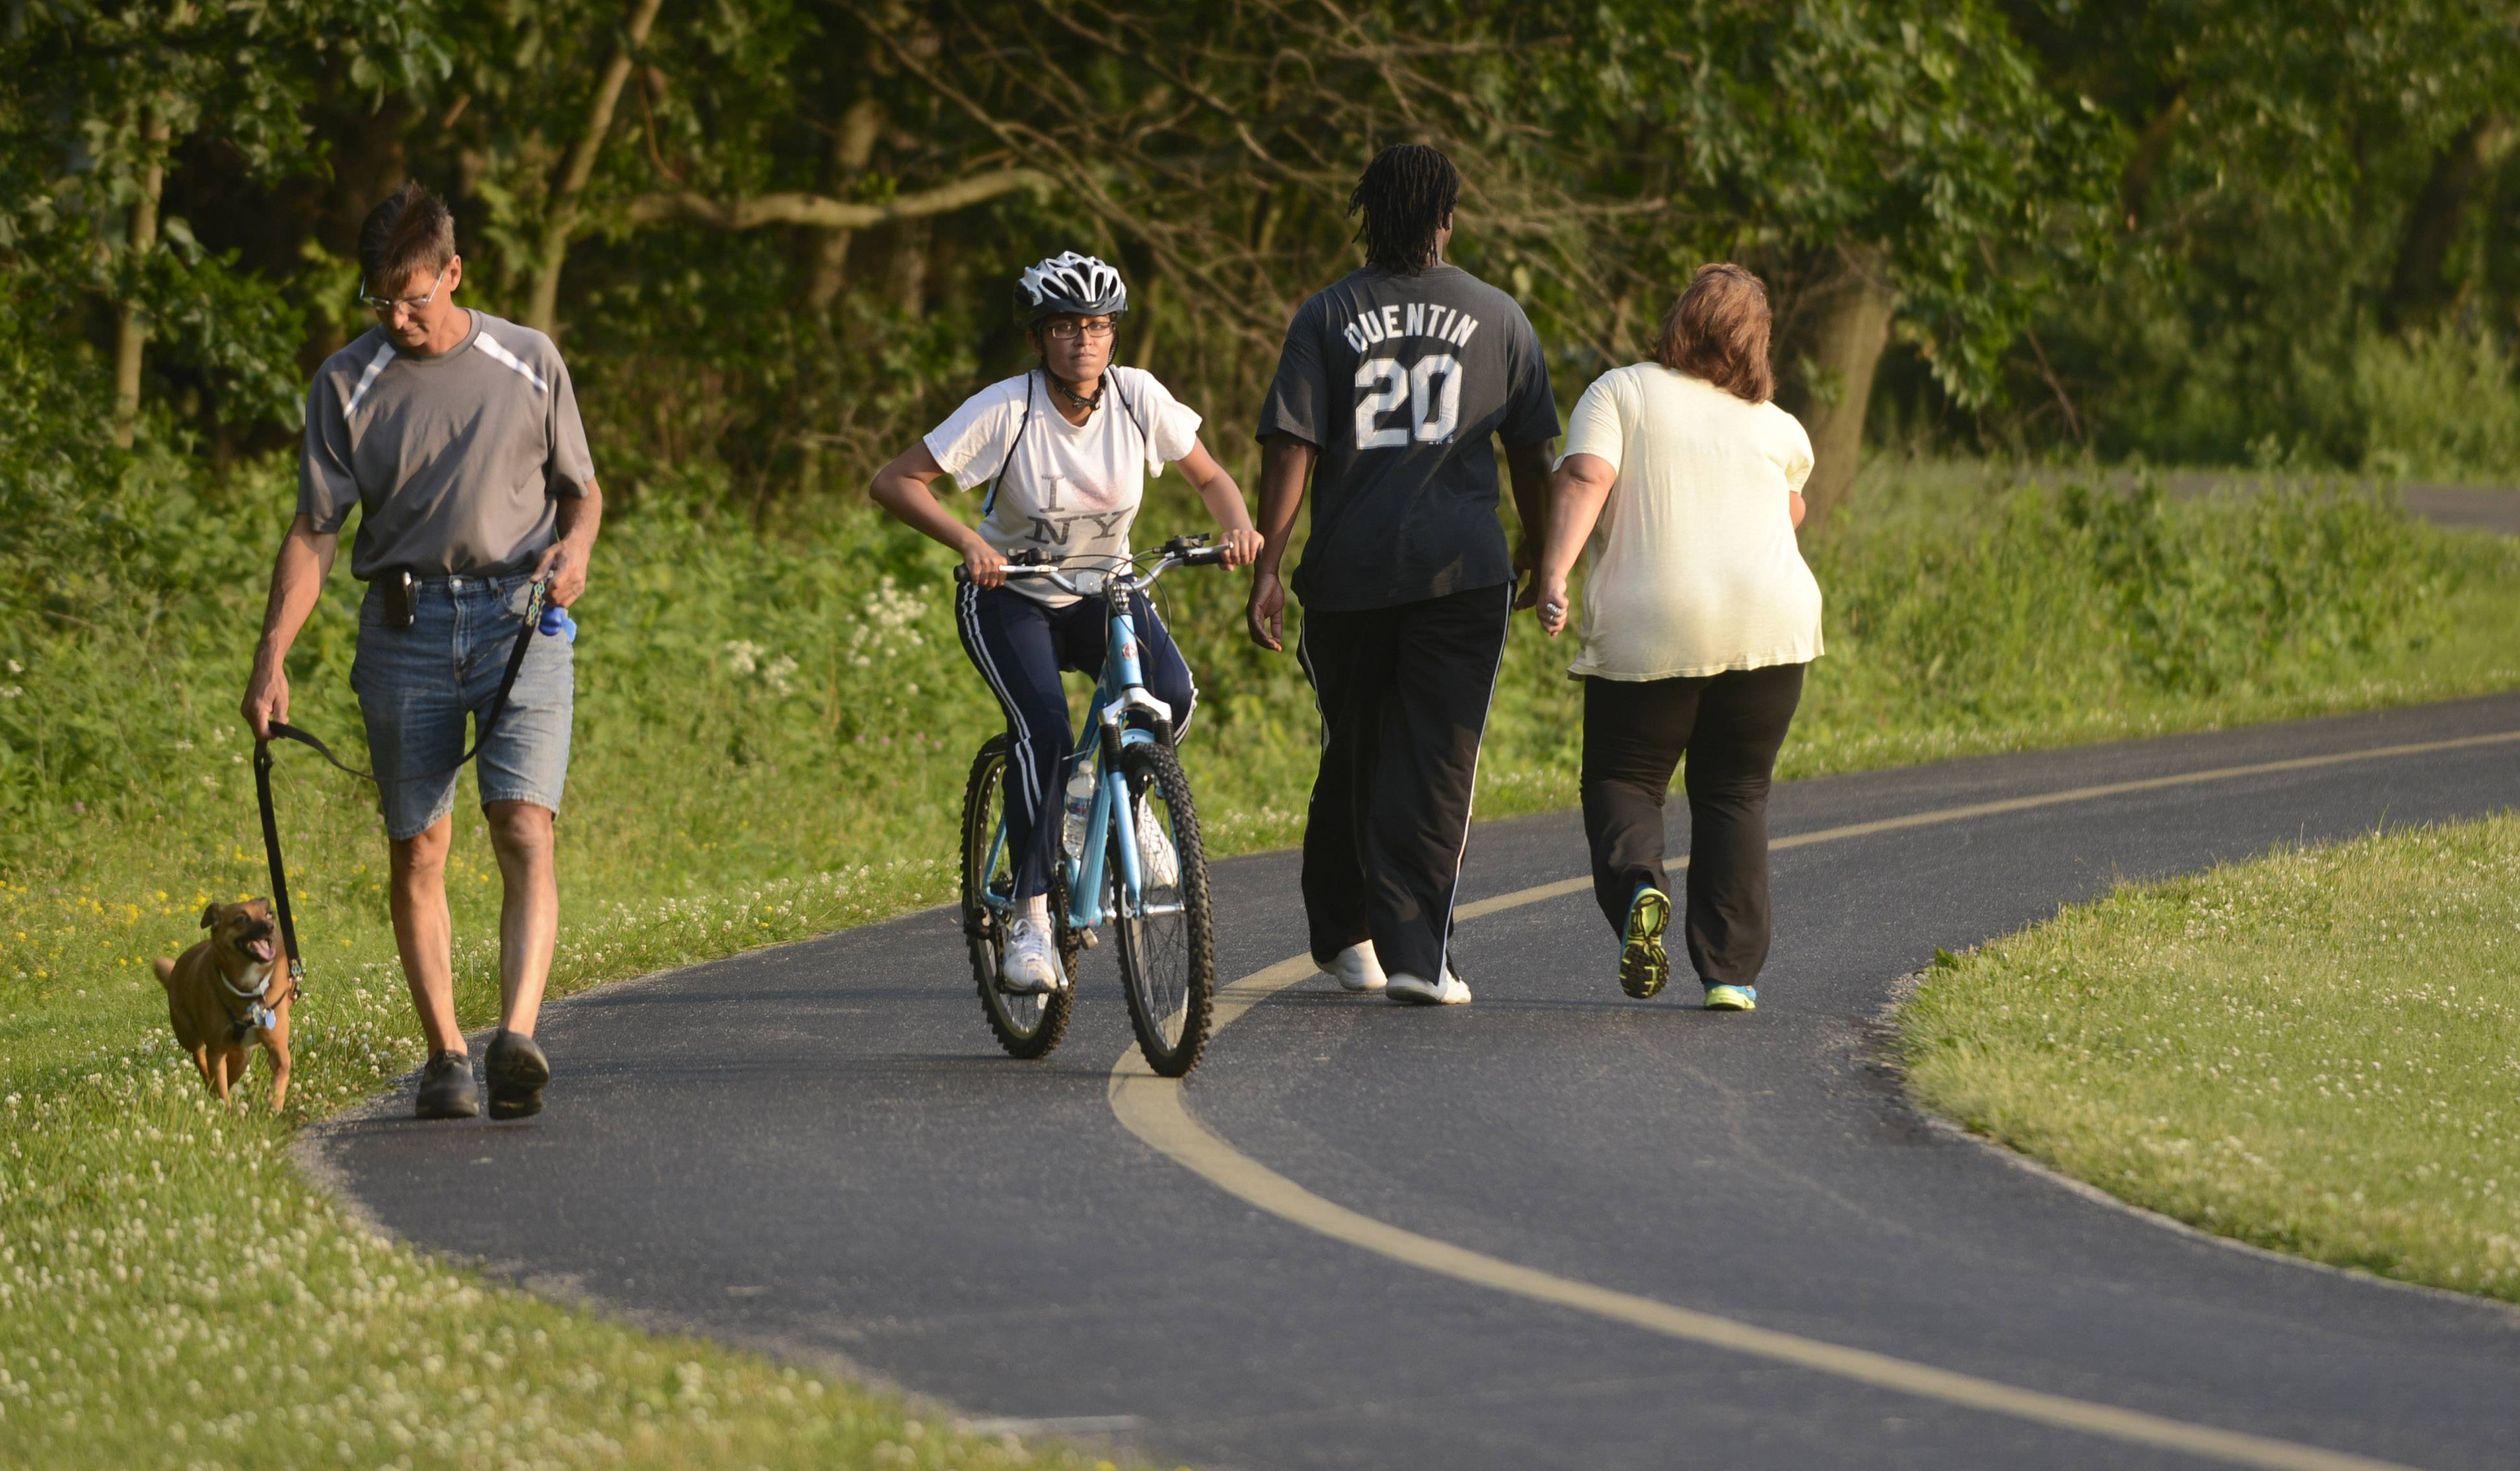 1,100 miles of trails in the suburbs, but 200 miles of gaps: Project aims to fix that